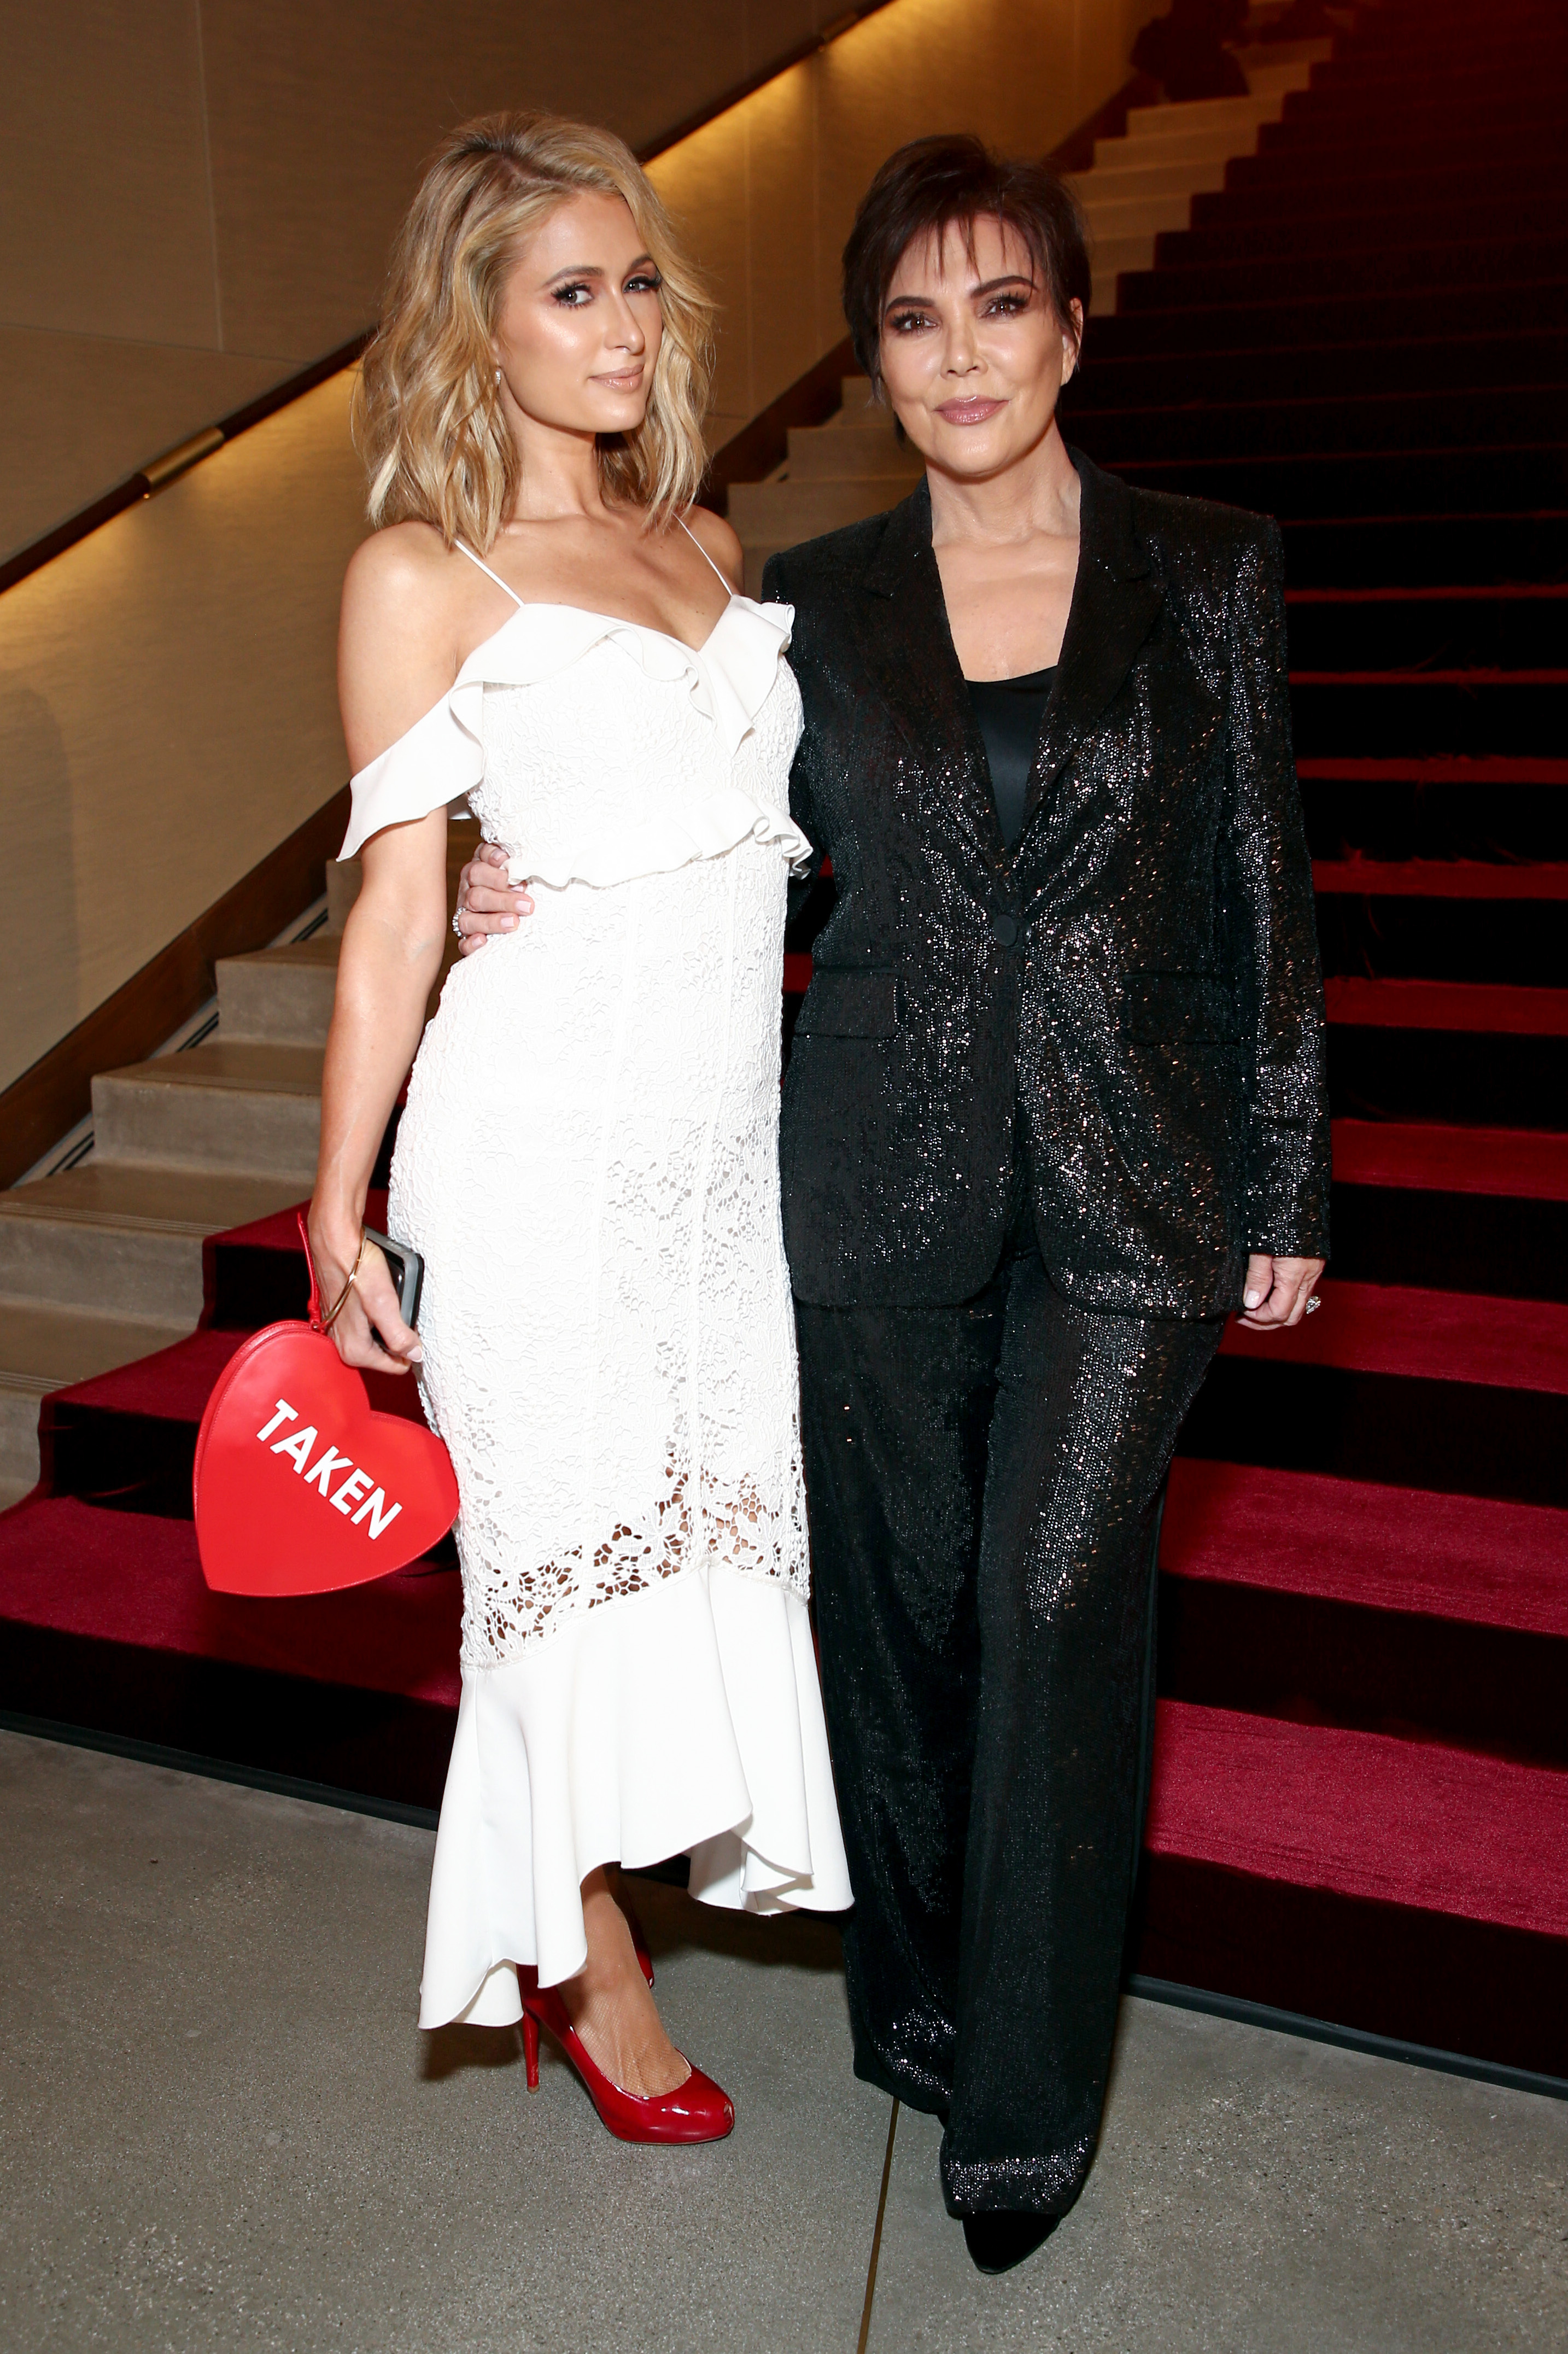 Paris Hilton and Kris Jenner appear in the front row of the Rachel Zoe Fall 2018 Collection Presentation in Los Angeles on Feb. 5, 2018.